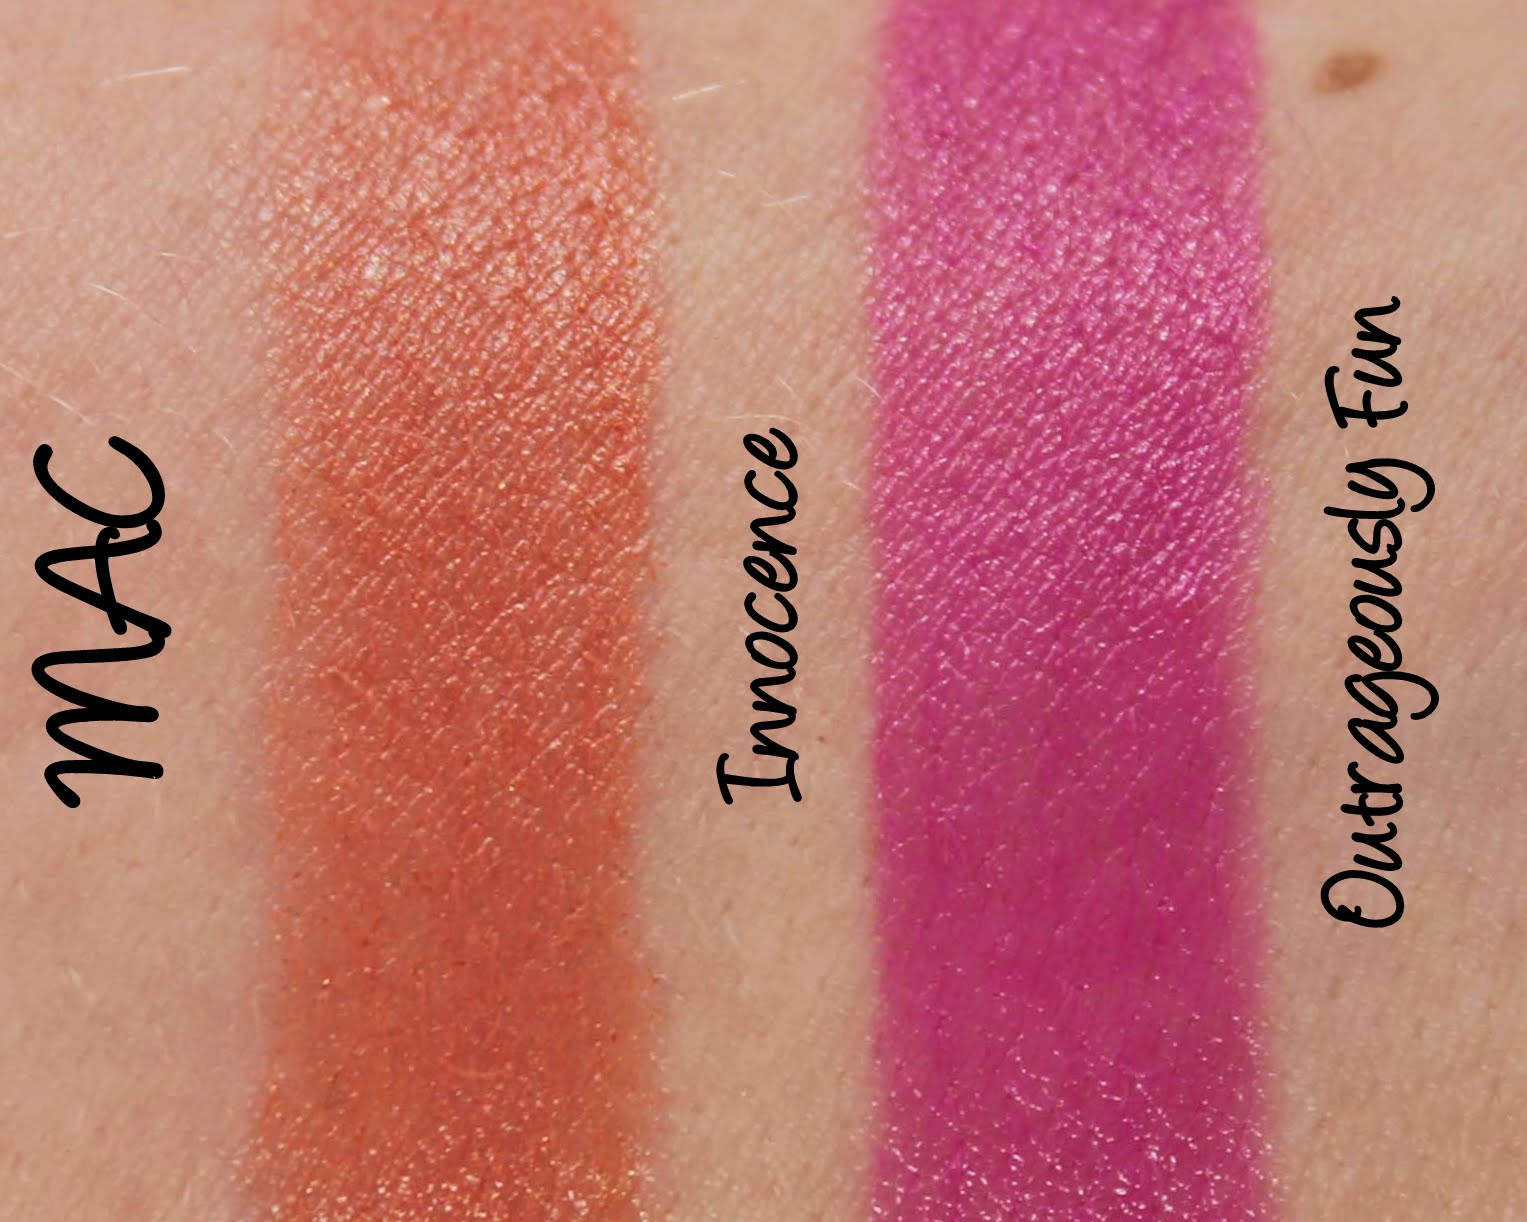 Mac Monday Glamour Daze Innocence And Outrageously Fun Lipsticks Swatches Review Lani Loves